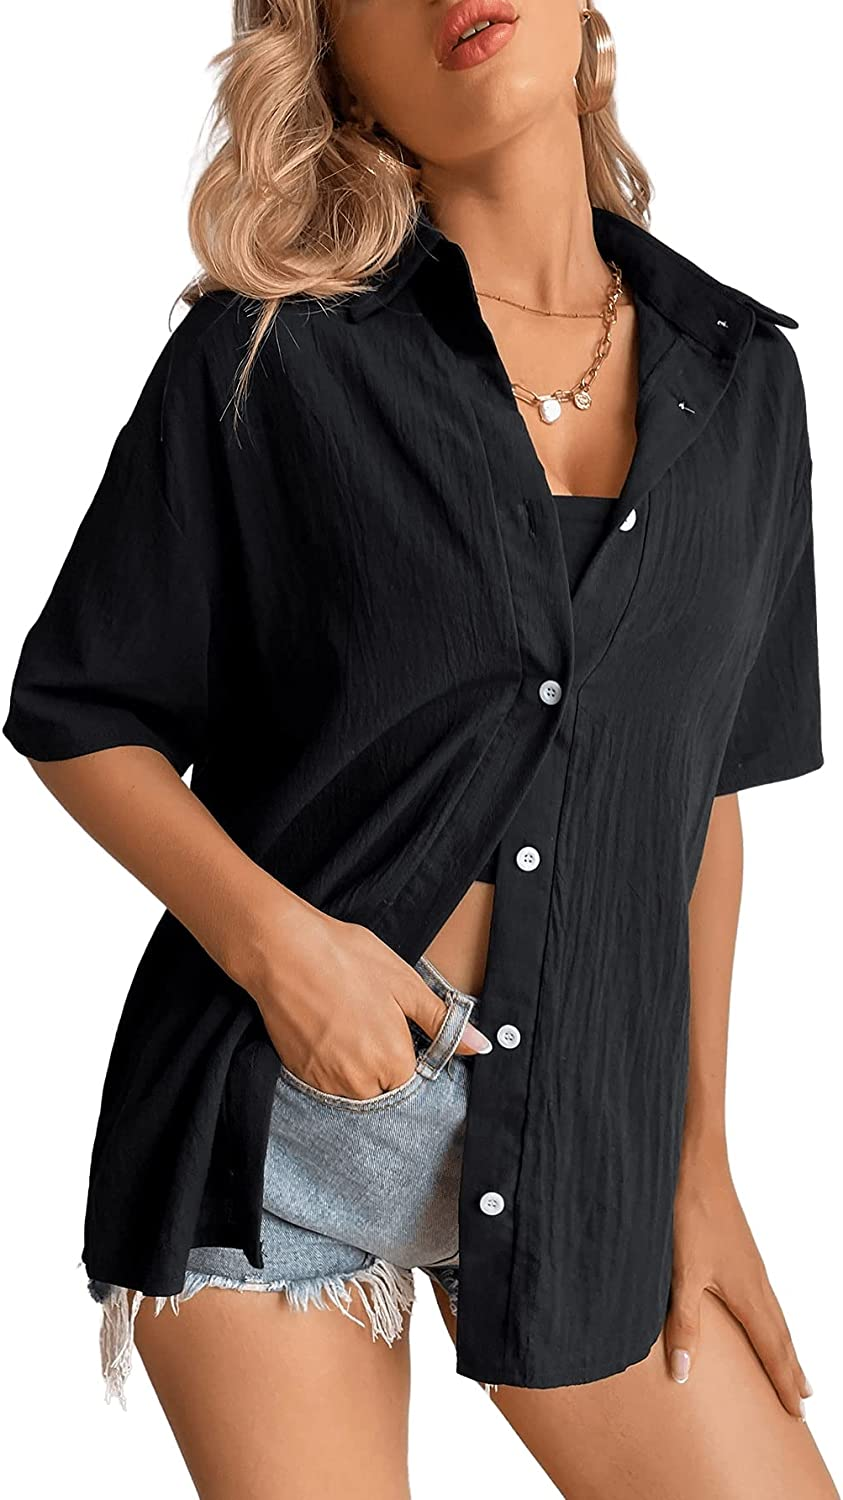 SOLY HUX Women's Button Down Shirt Short Sleeve Casual Blouse Top